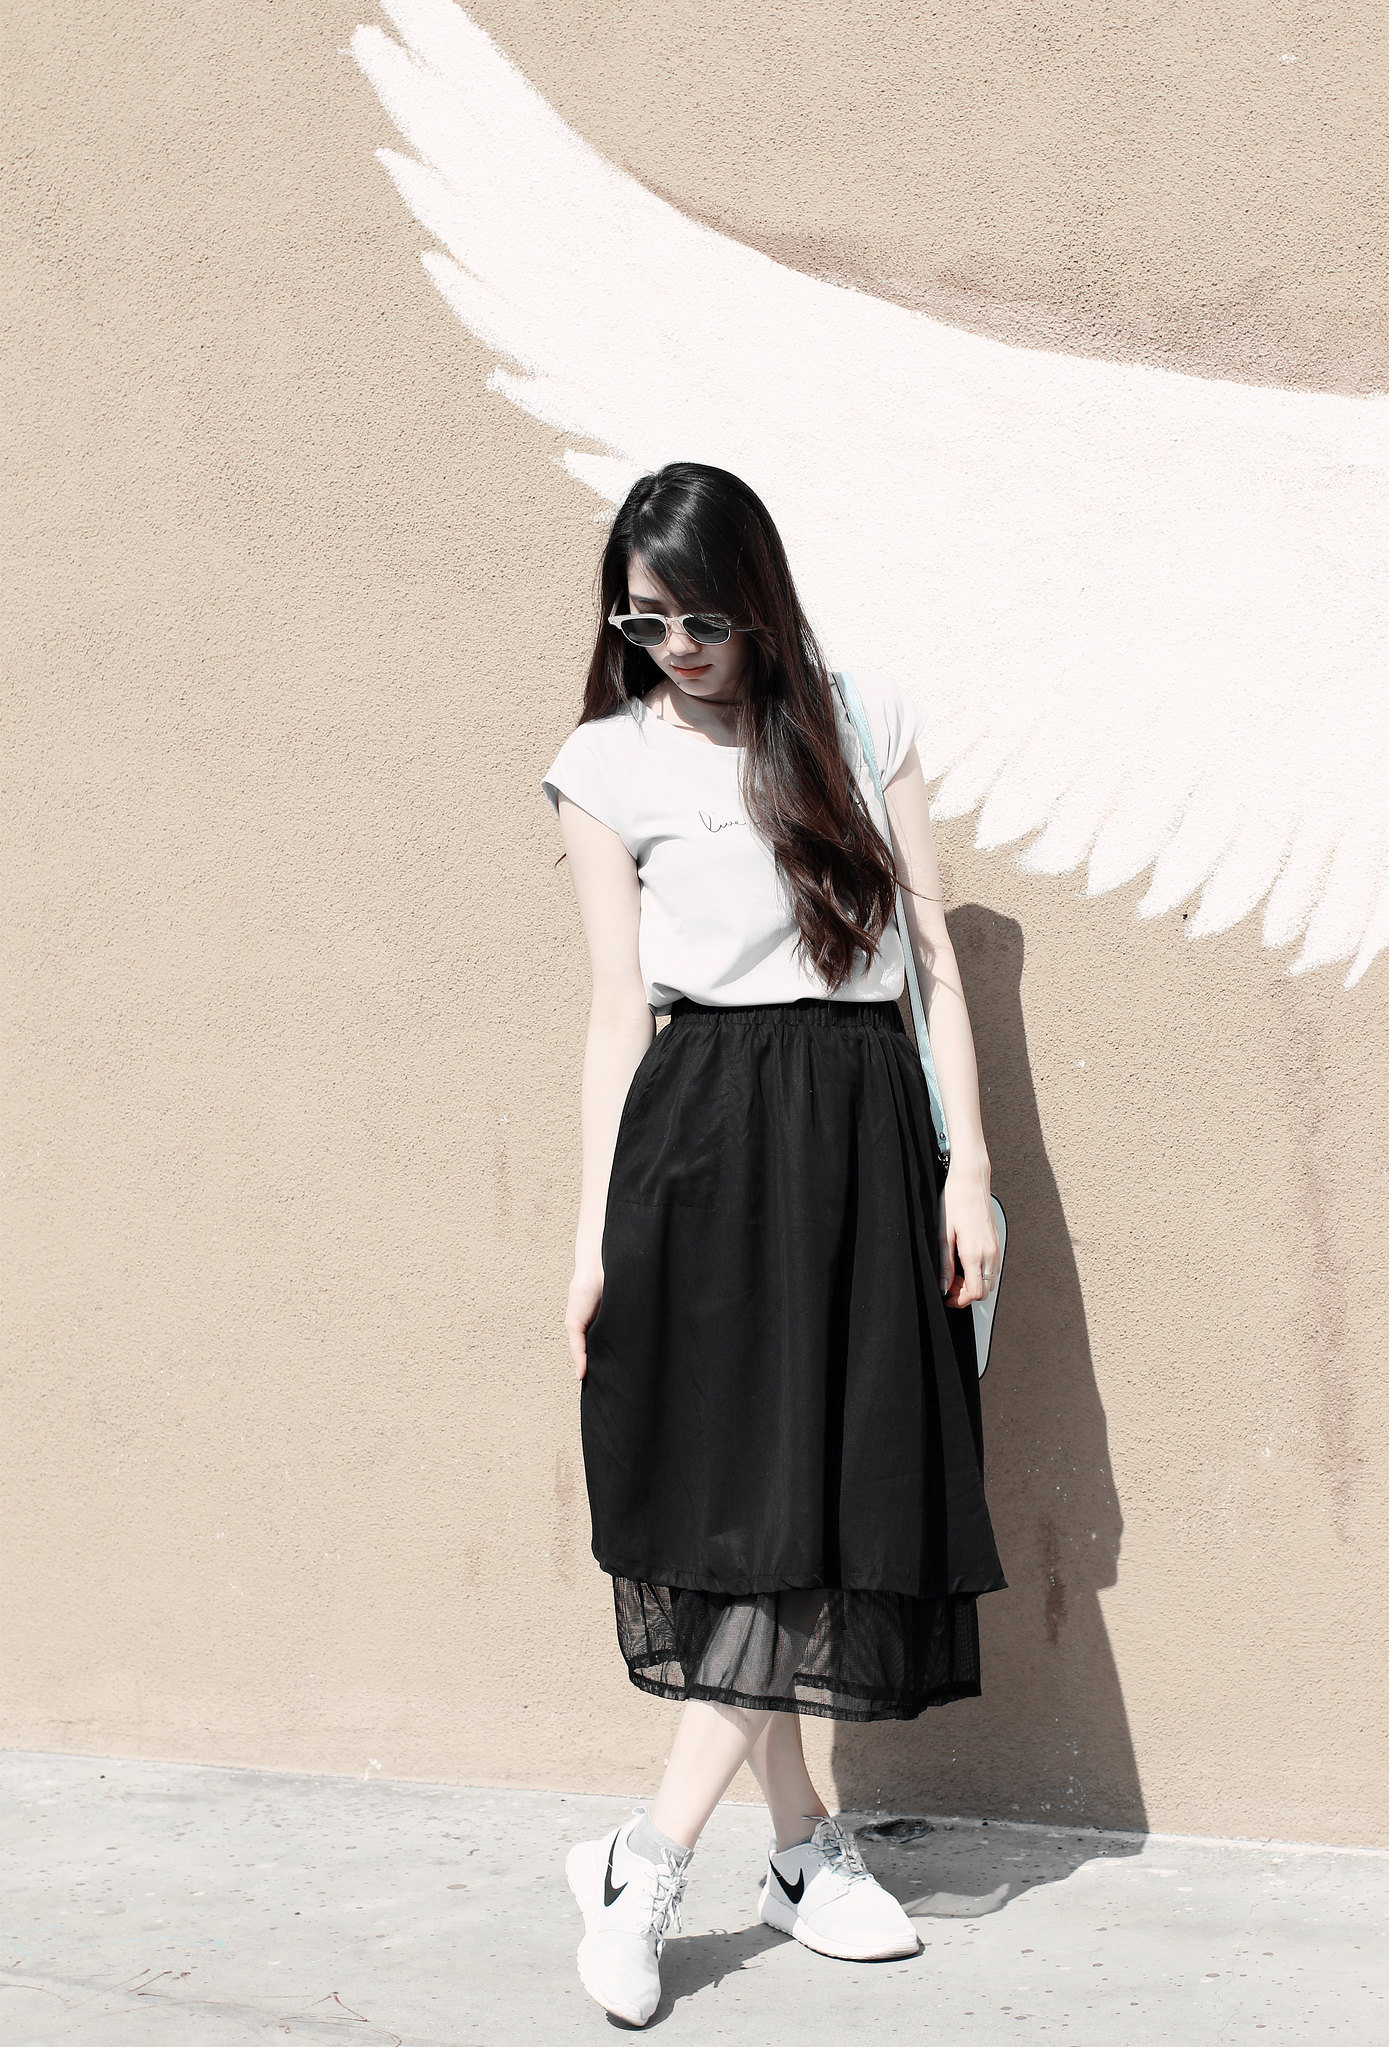 9844-black-midi-skirt-live-your-dream-chiffon-blouse-korean-summer-fashion